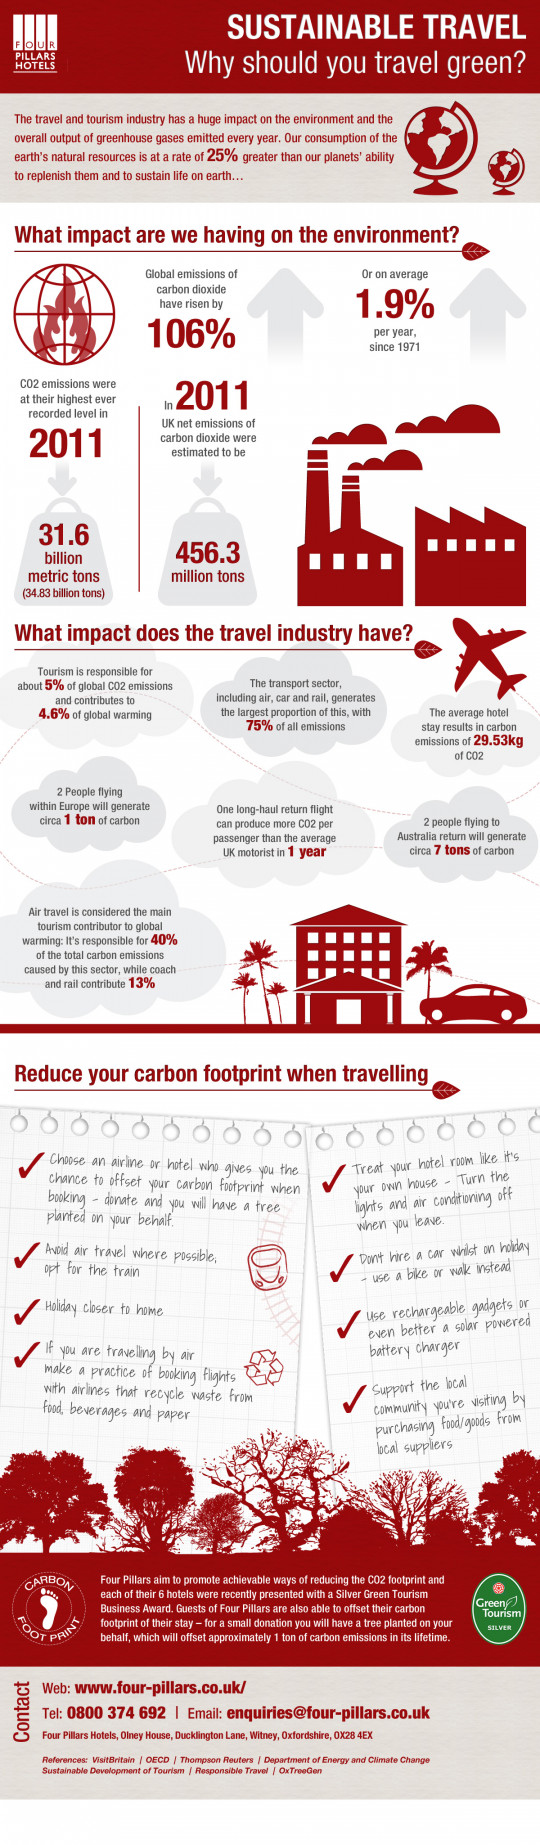 Sustainable Travel - Why Should You Travel Green?